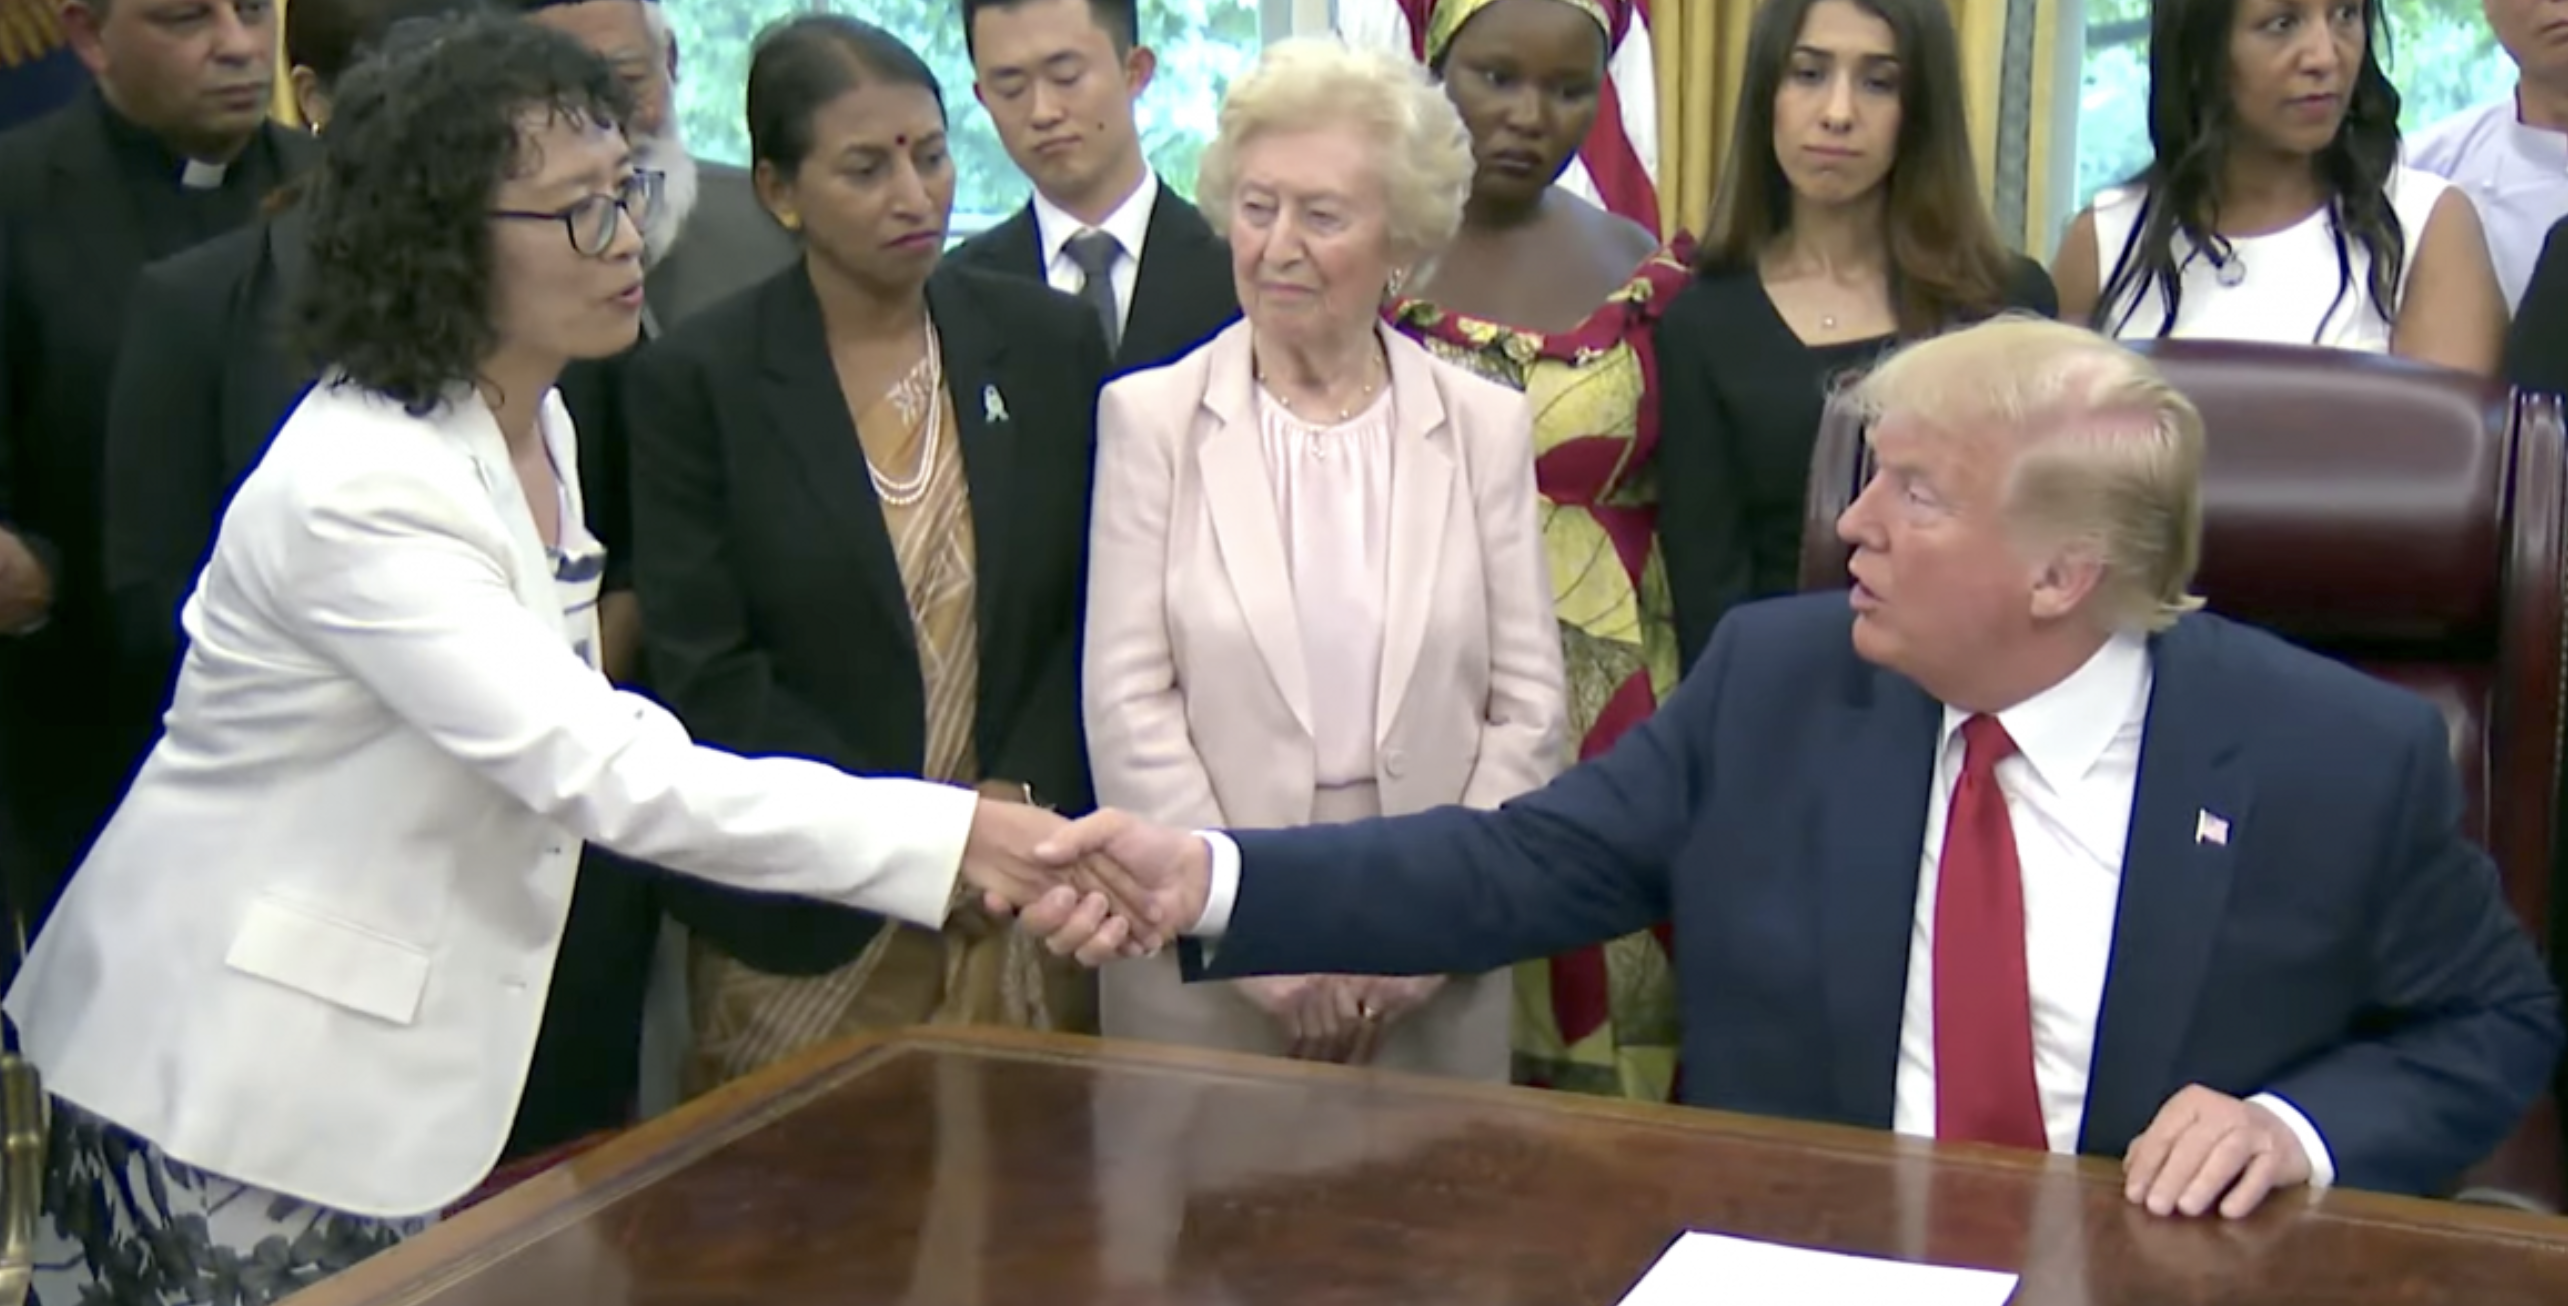 U.S. President Donald Trump shakes hands with Ms. Zhang Yuhua, a Falun Gong practitioner who survived persecution in China, at the White House on July 17, 2019. (Screenshot/The White House)